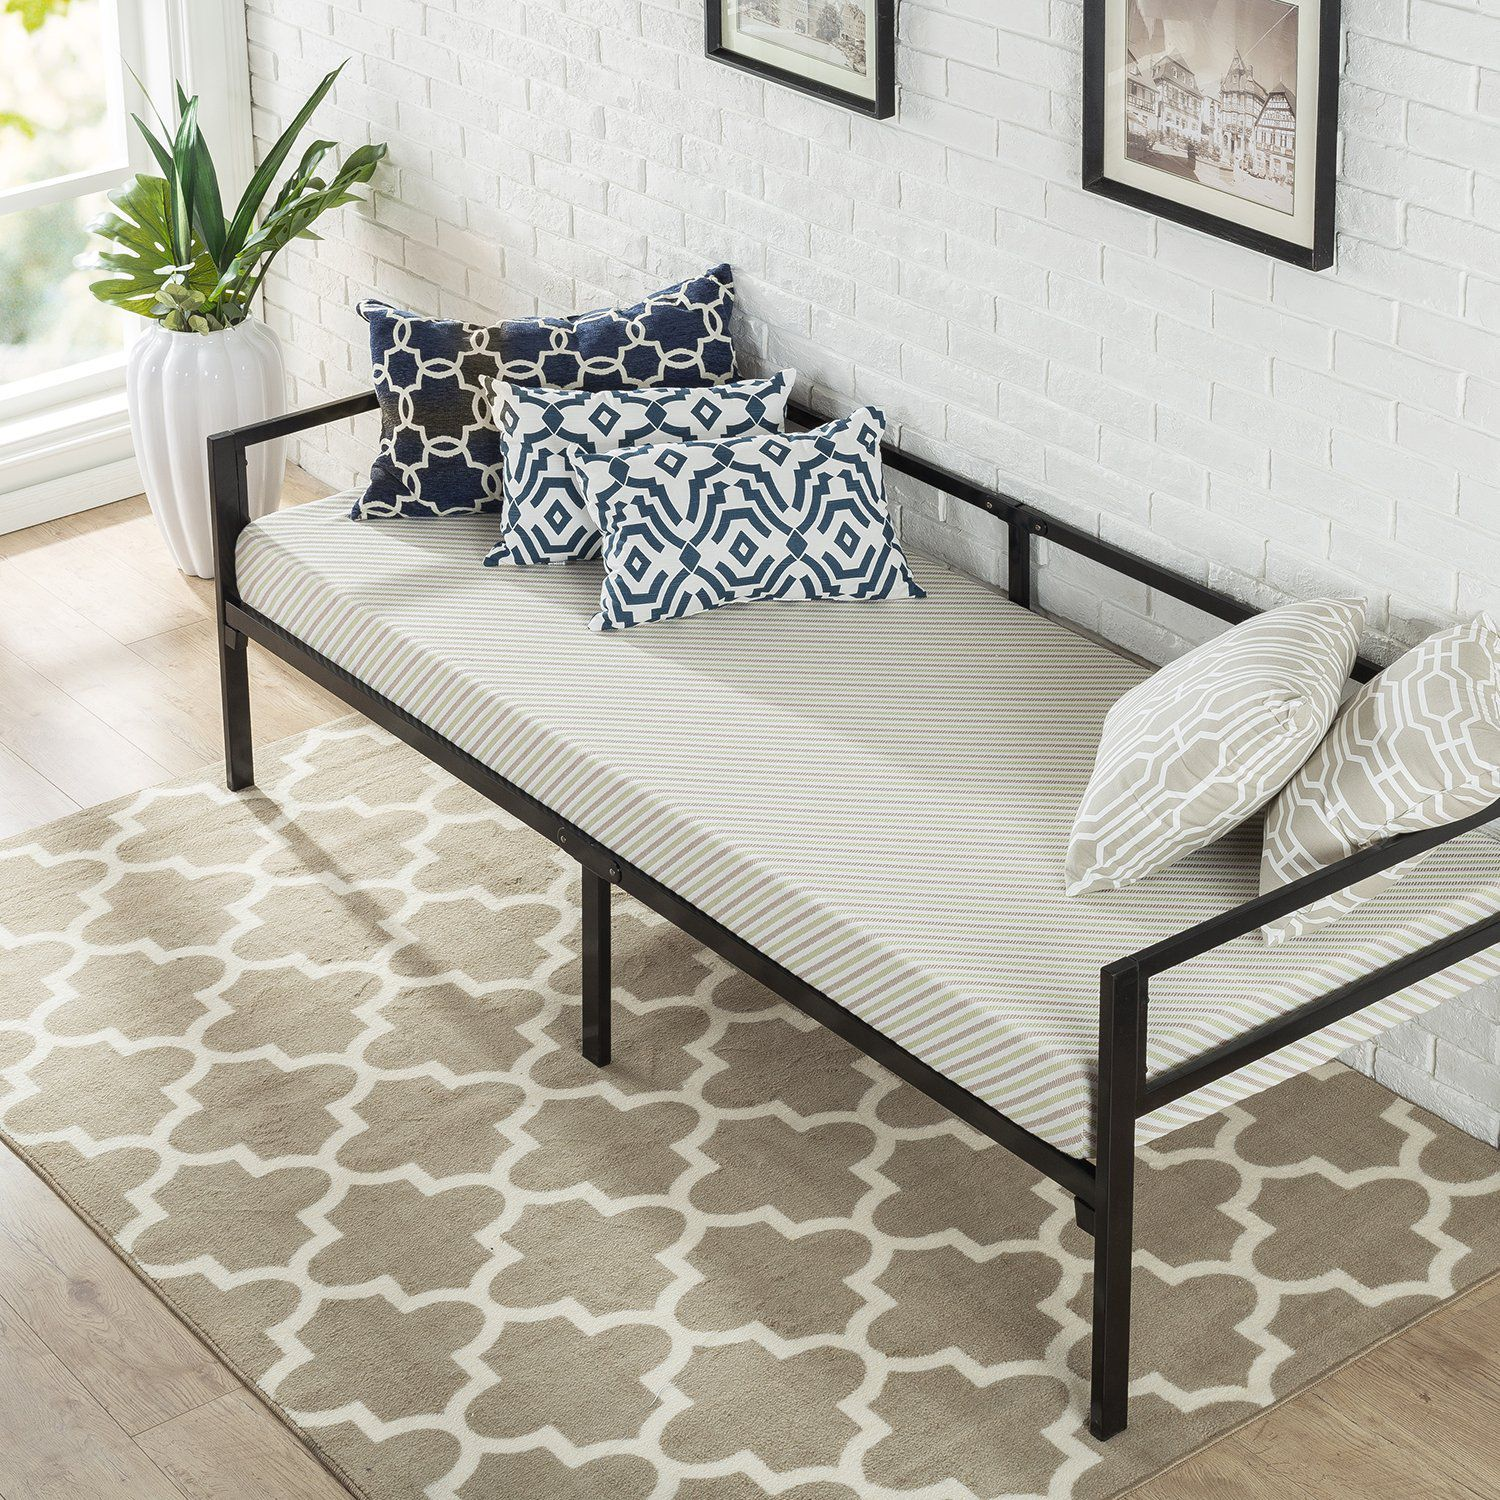 The 8 best coffee tables to buy in 2018 the 8 best daybeds to buy in 2018 geotapseo Image collections